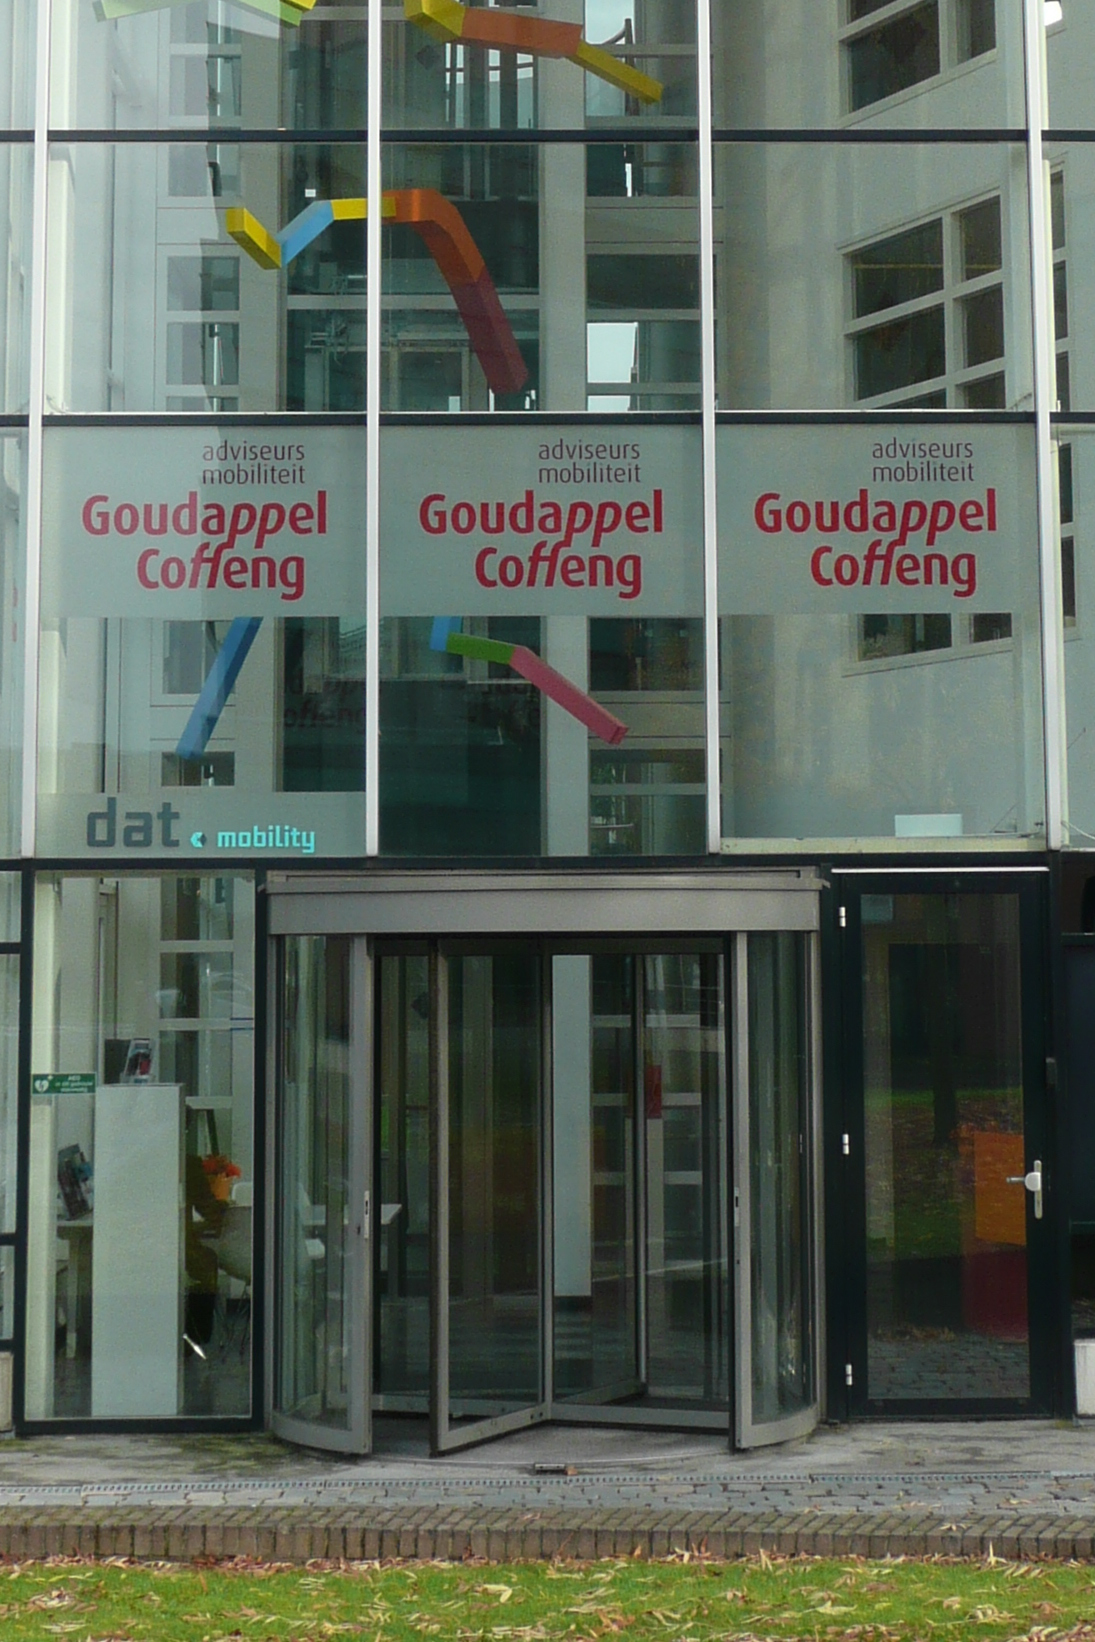 Gevelbelettering Goudappel Coffeng